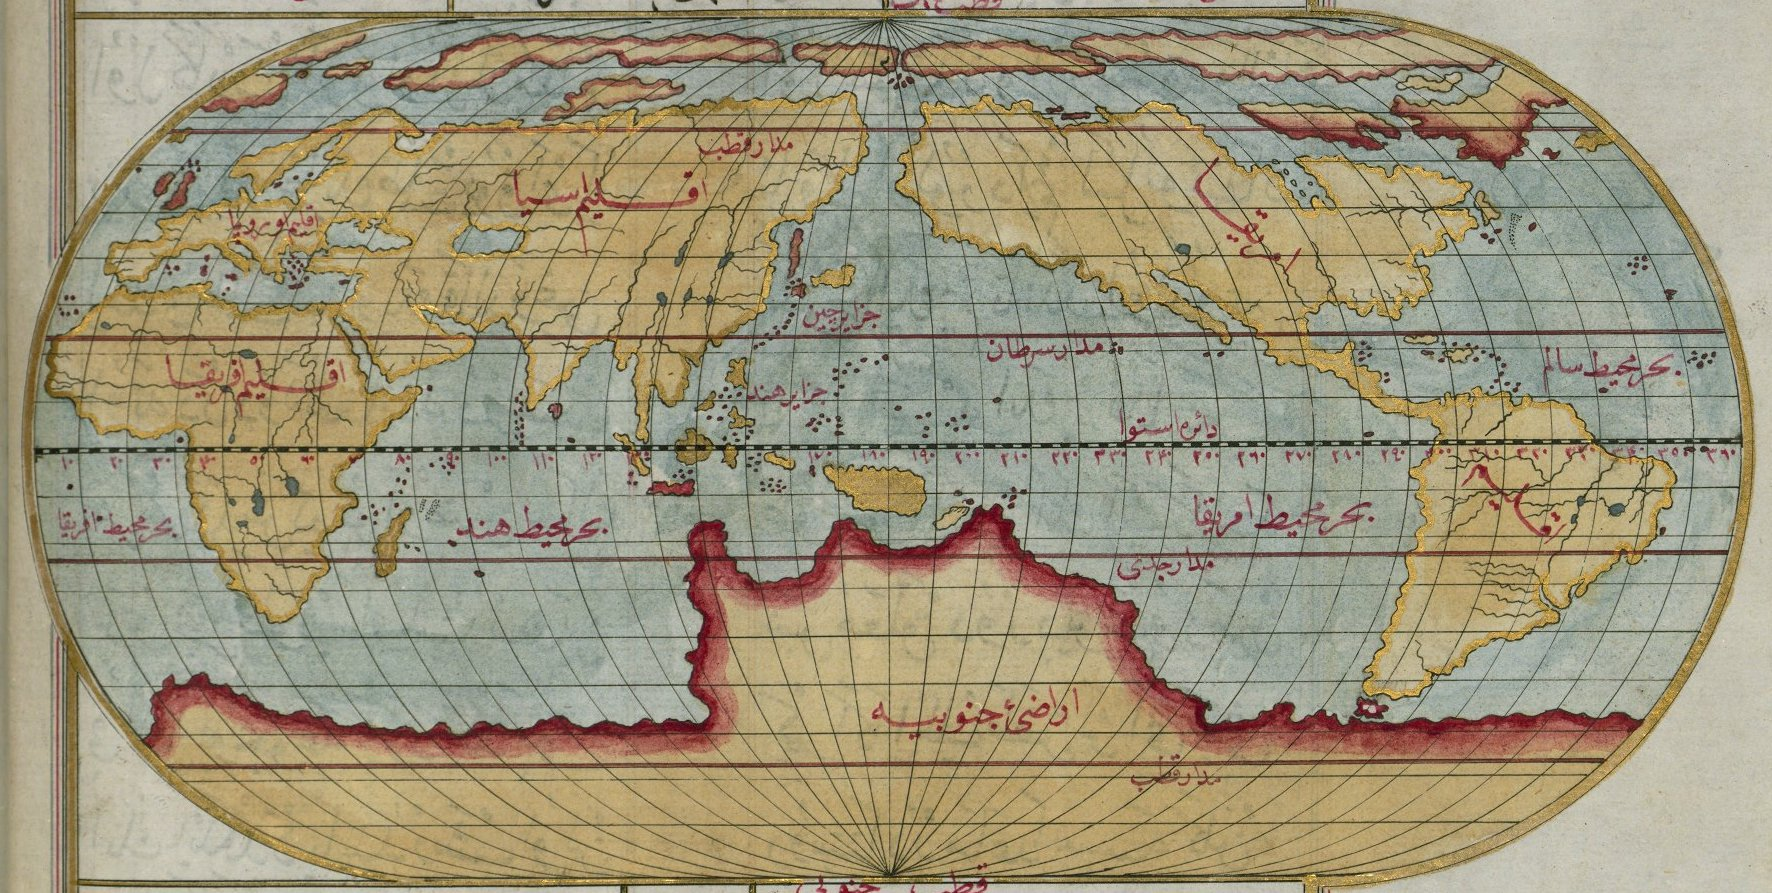 Image caption: Pirî Reis, Oval map of the world with the Pacific Ocean in the center, in Kitāb-i baḥriye (Book on navigation), Walters Ms. W.658, 1525, fol. 23b r, detail. © 2000 by Cartography Associates, under Attribution-NonCommercial-ShareAlike 3.0 Unported (CC BY-NC-SA 3.0) licence.